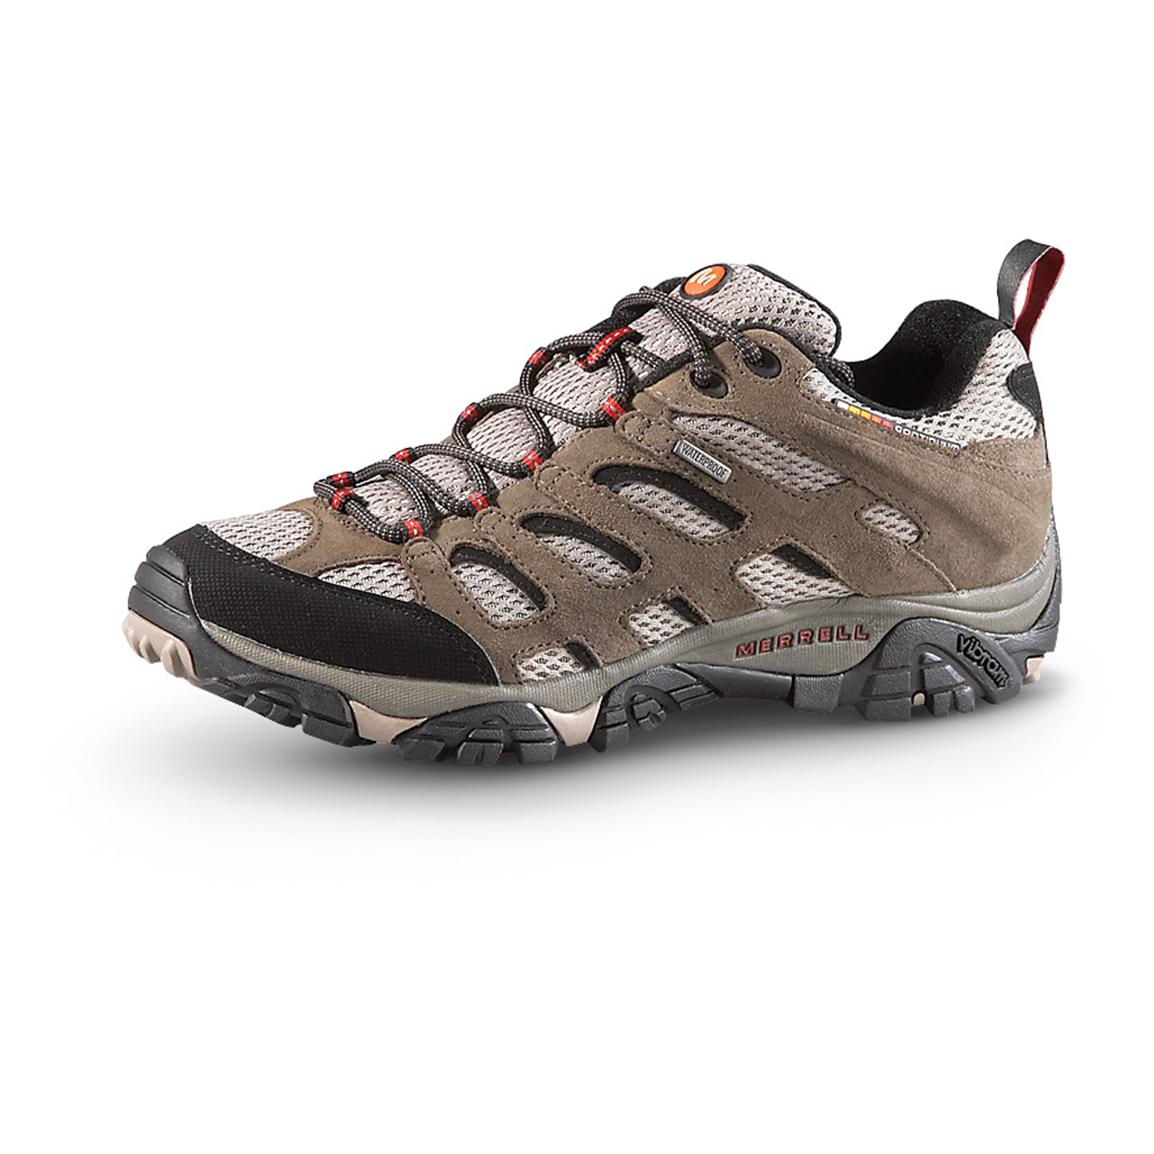 Waterproof Merrell Men's Moab Hiking Shoes, Bark Brown